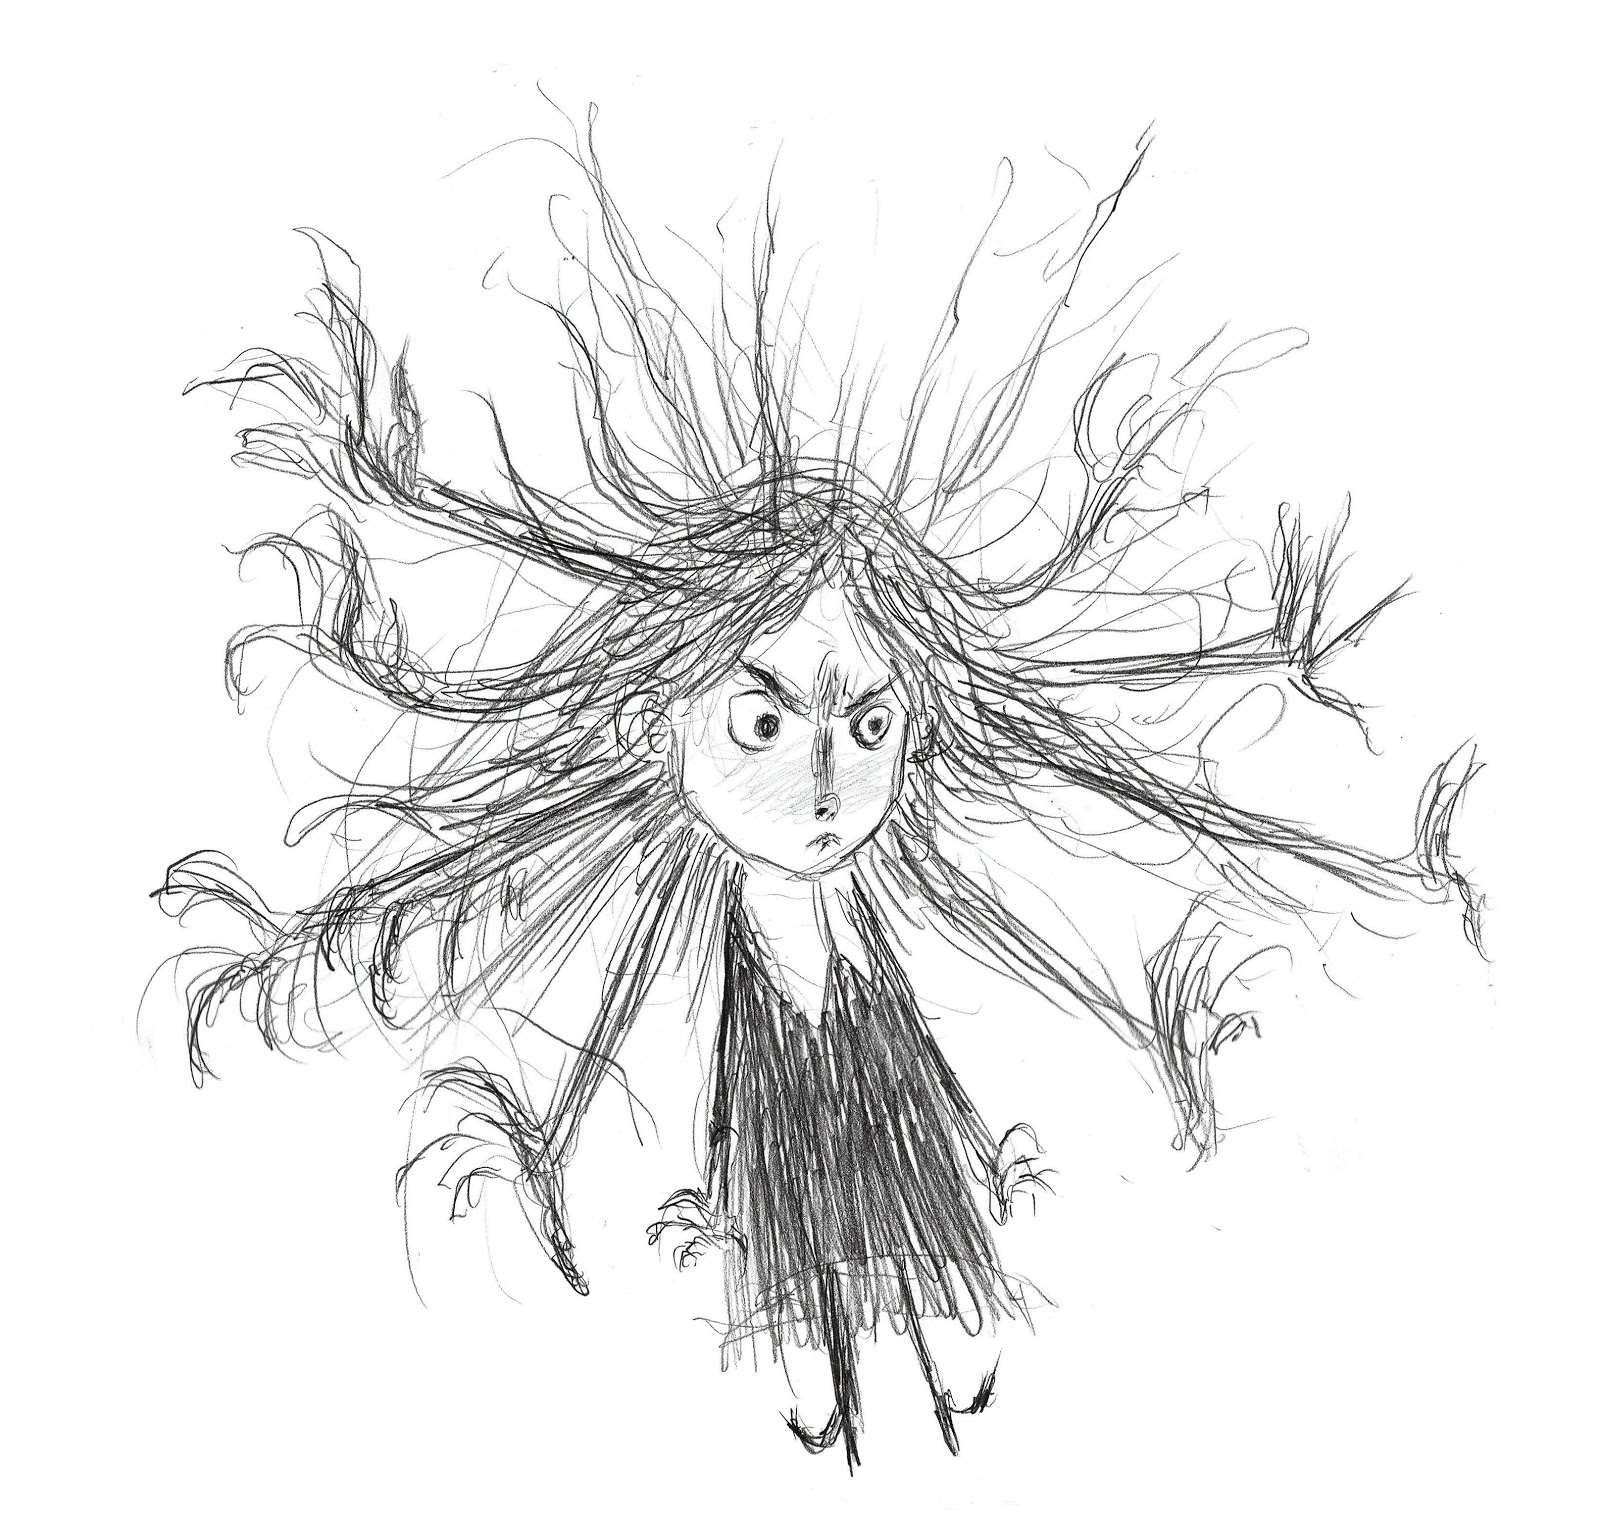 114-paranorman-concept-art-character-design--Angry_Aggie_1.jpg